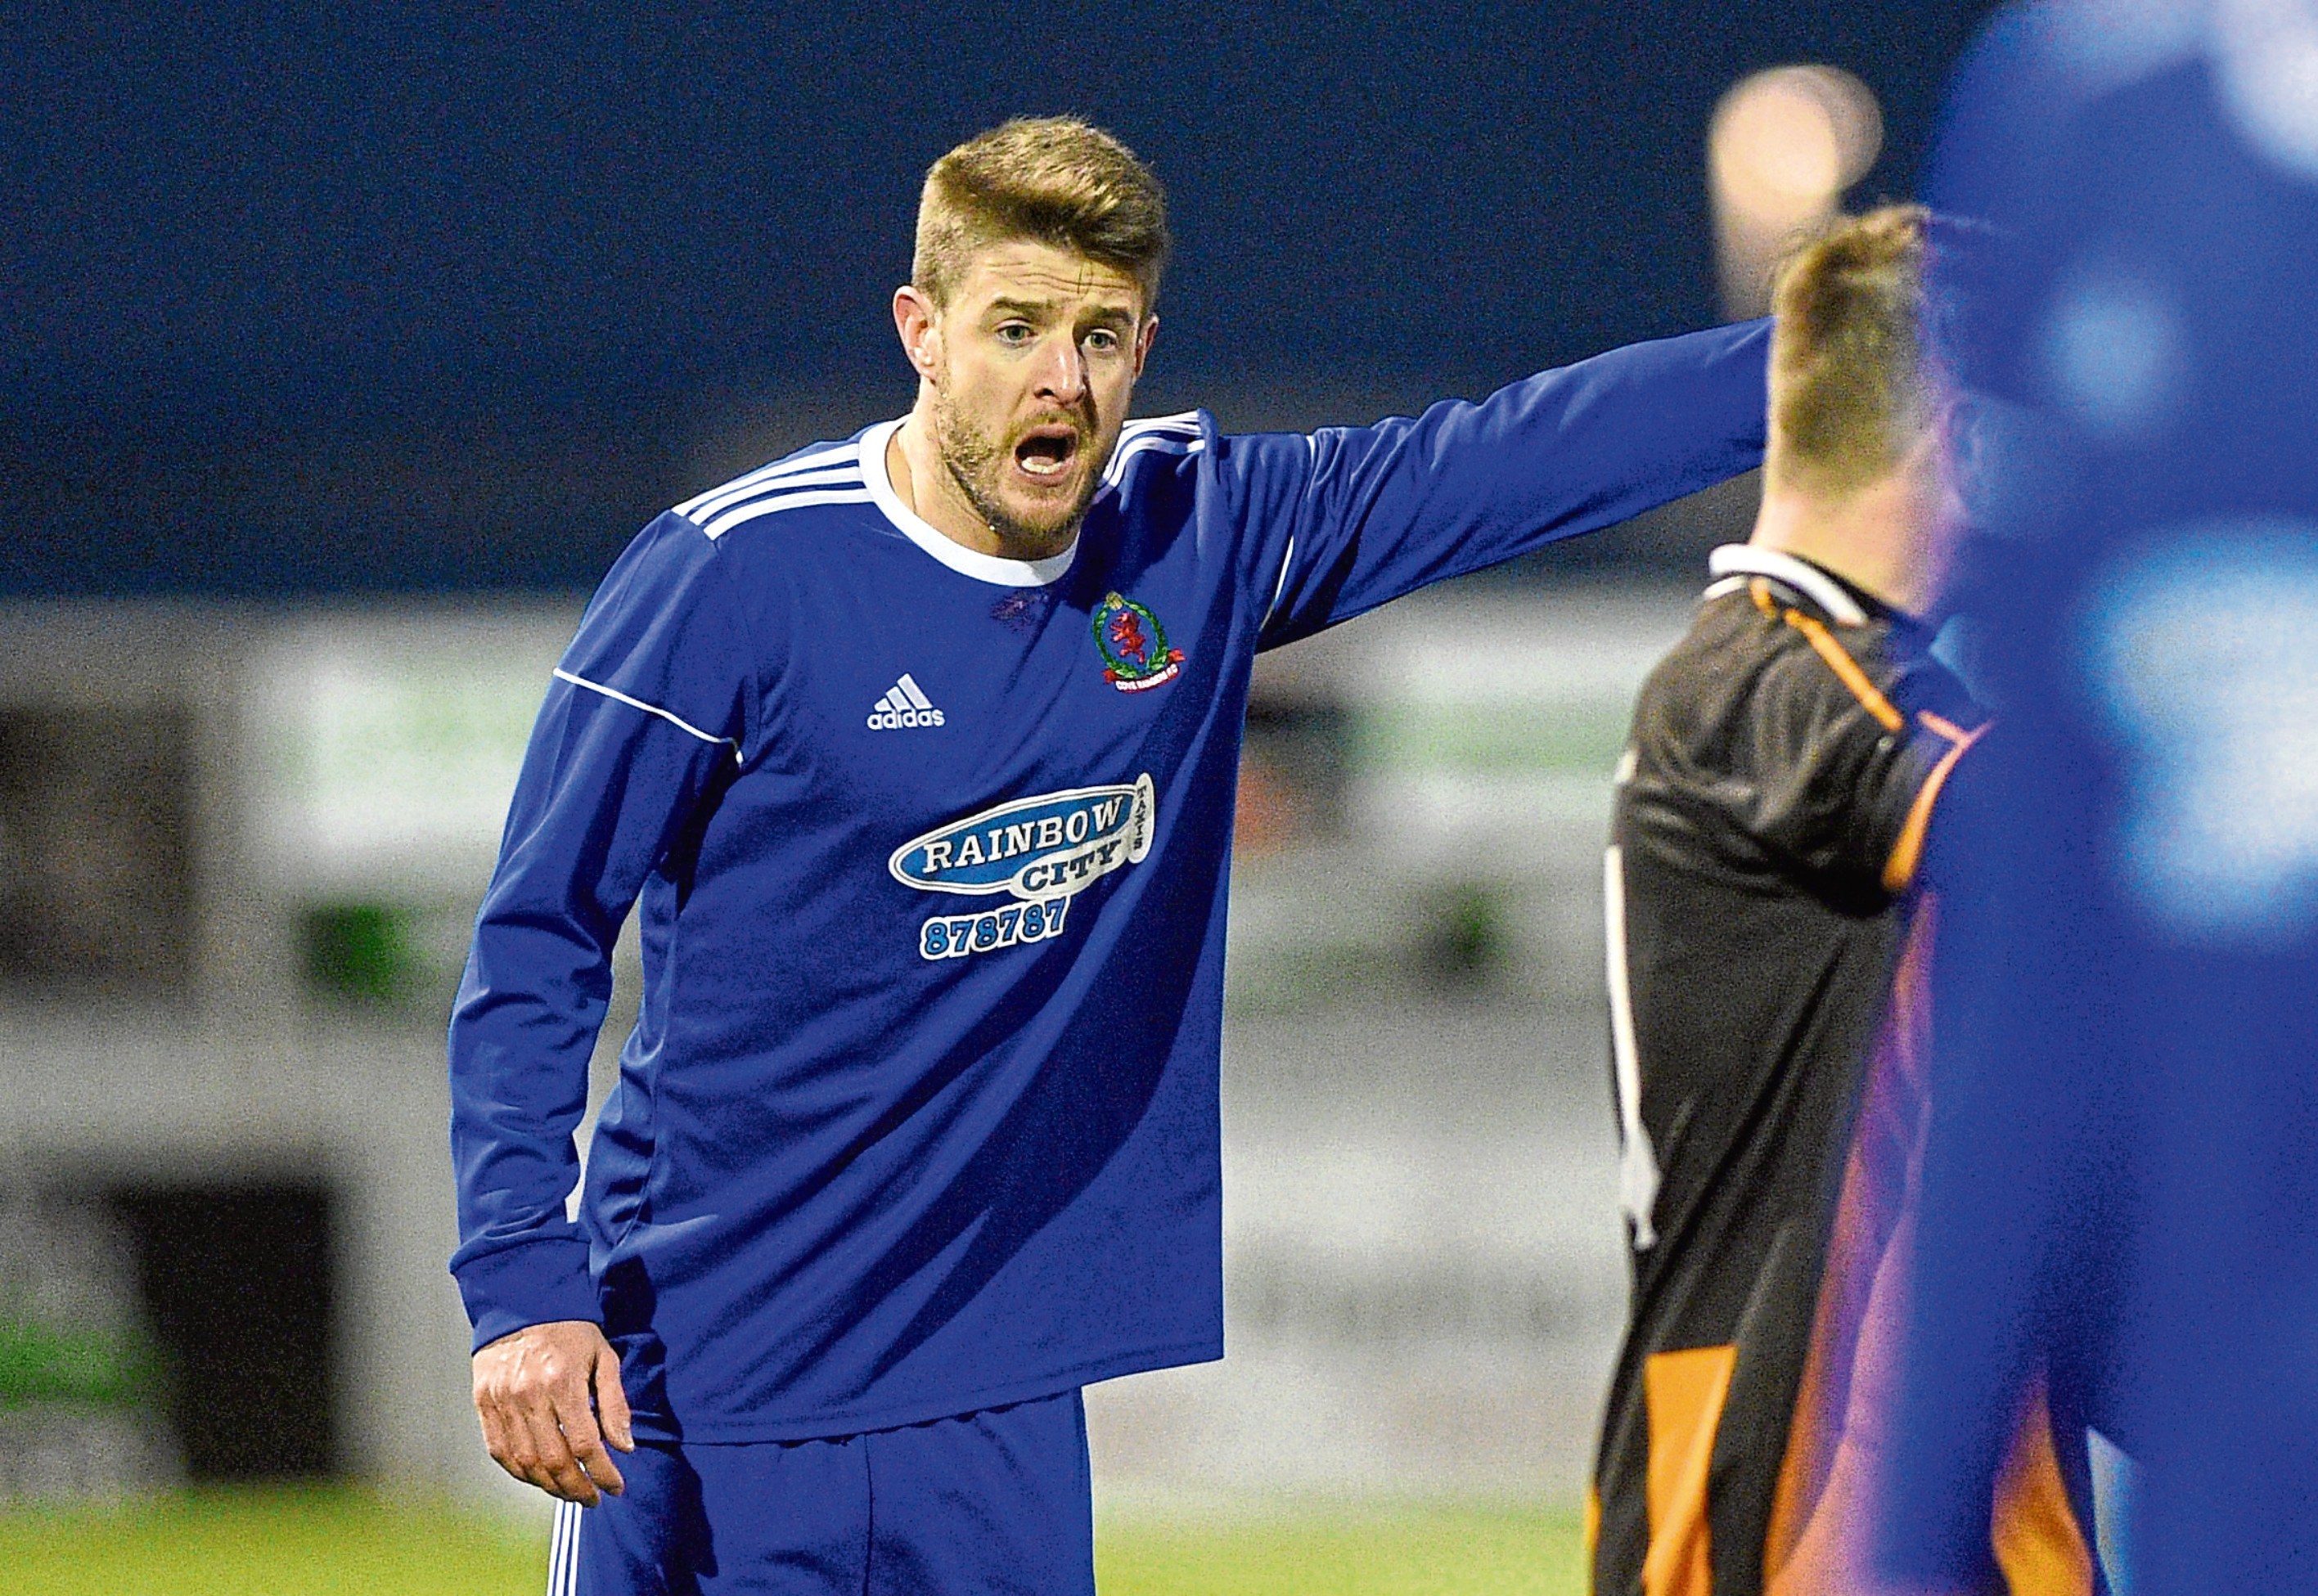 Darryn Kelly in action for Cove Rangers